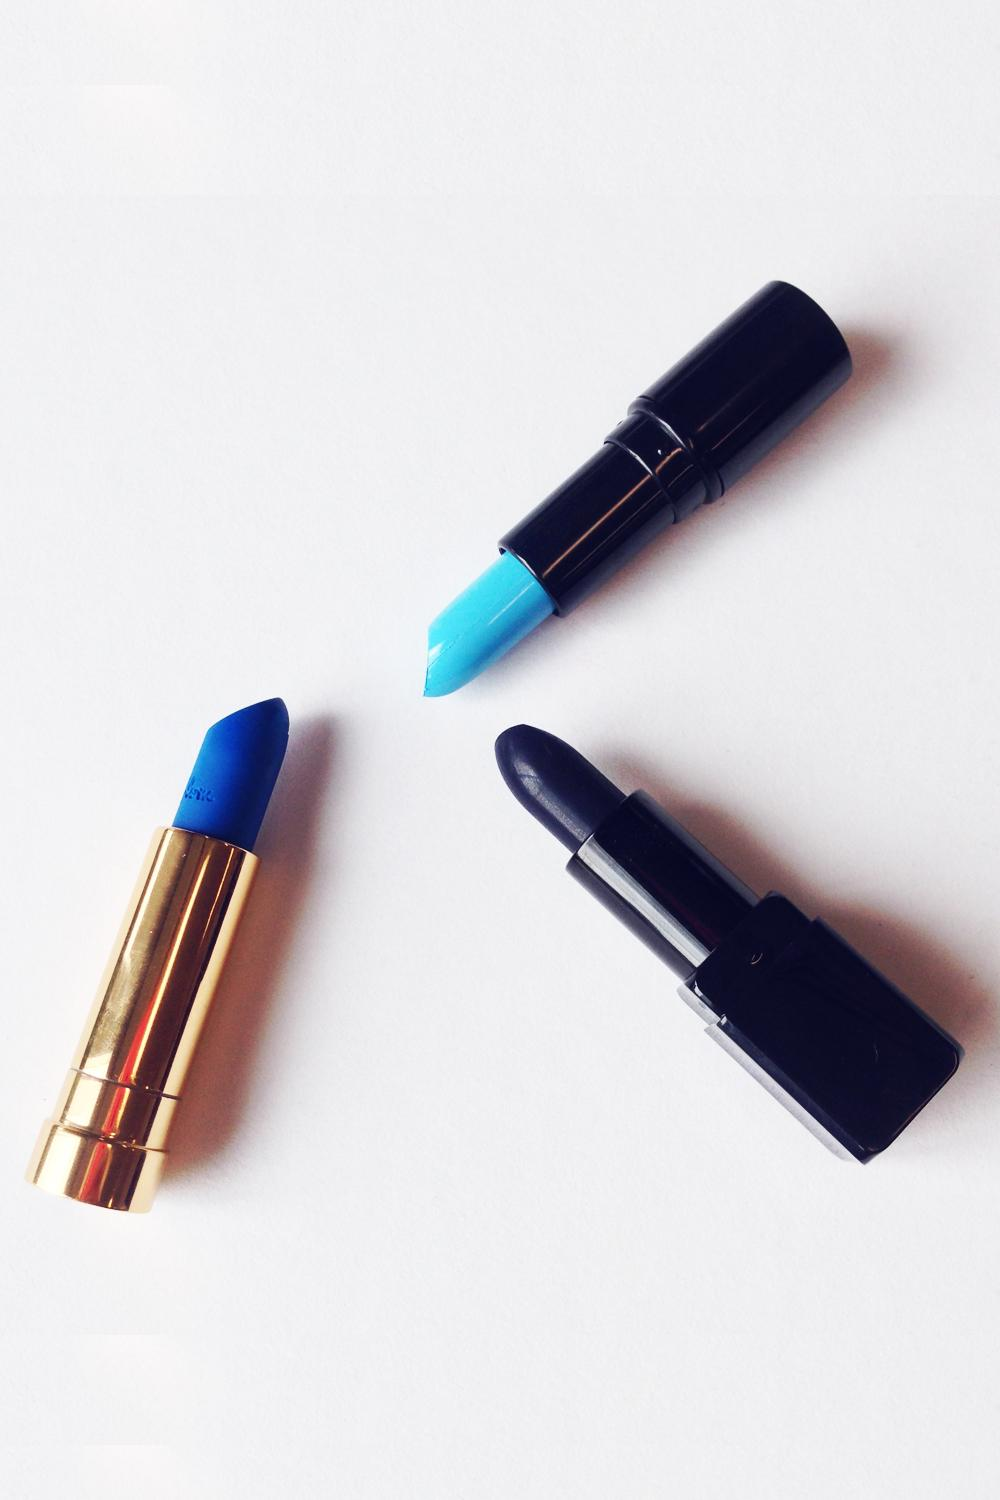 Could this be the strangest Beauty trend of the year...?? We put blue lips to the test http://t.co/RoFcMfZ7rk http://t.co/XE3iizgcg7